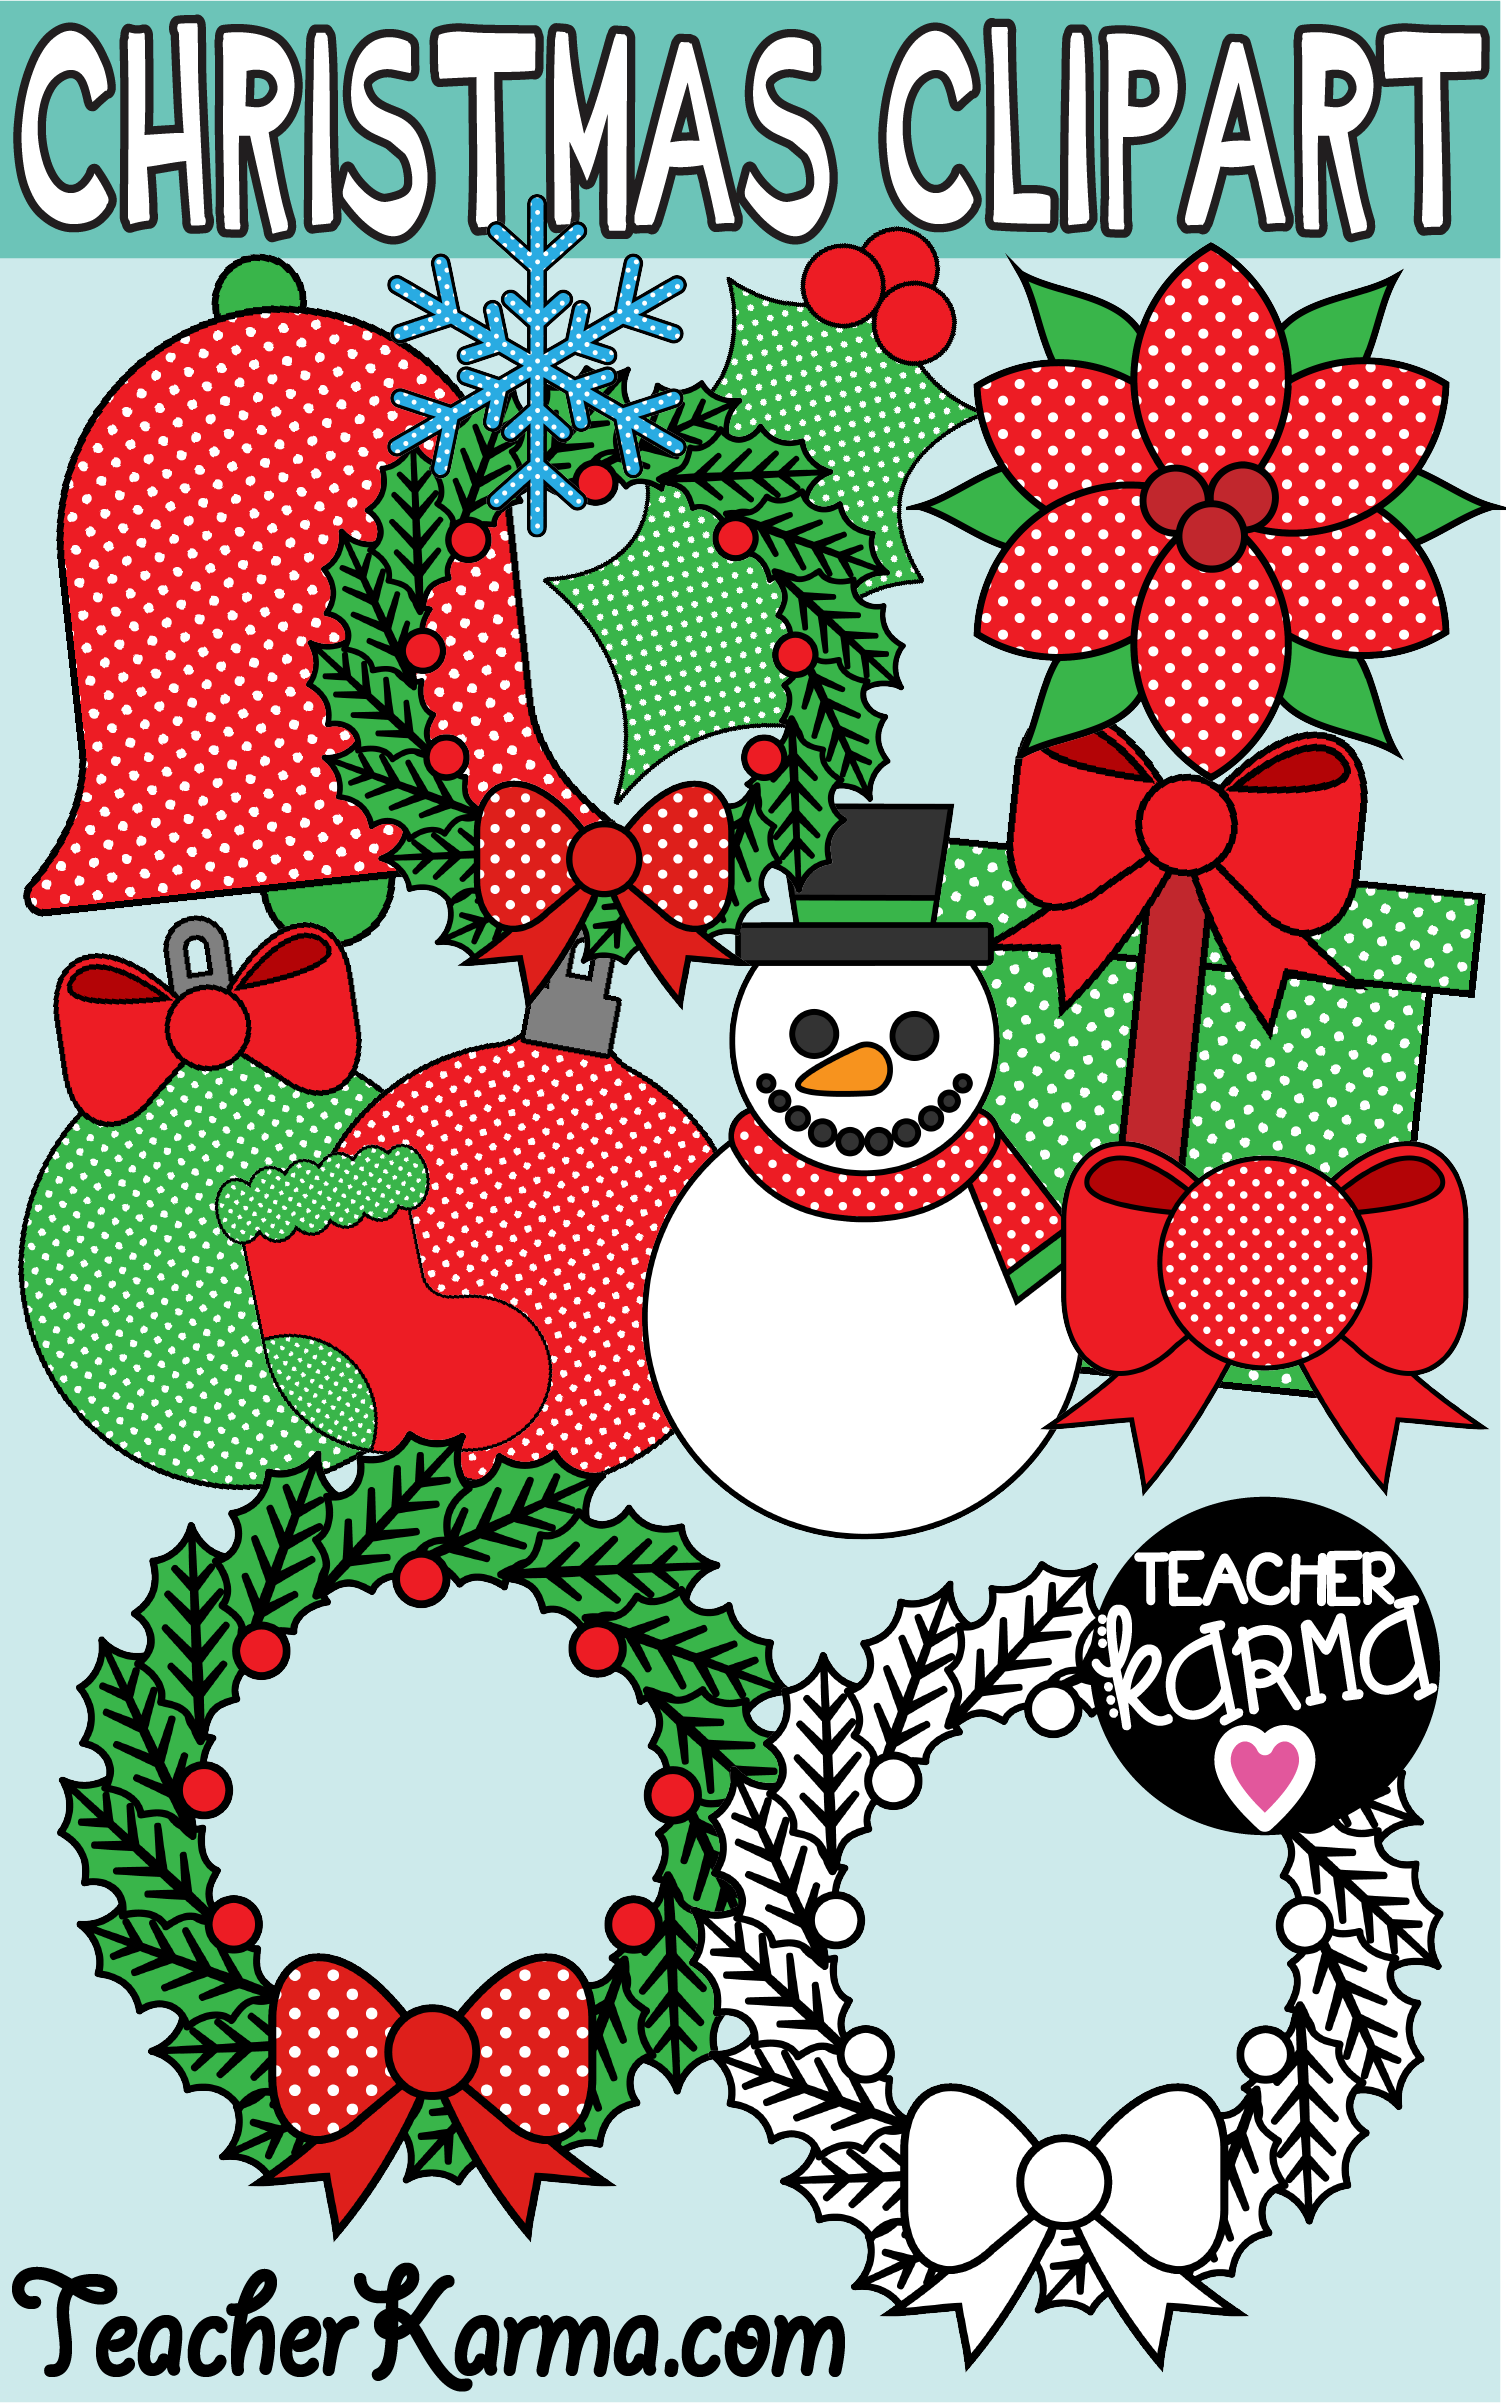 small resolution of christmas clipart for the classroom holiday graphics include bells ornaments wreaths snowmen gifts bows presents stockings holly poinsettia